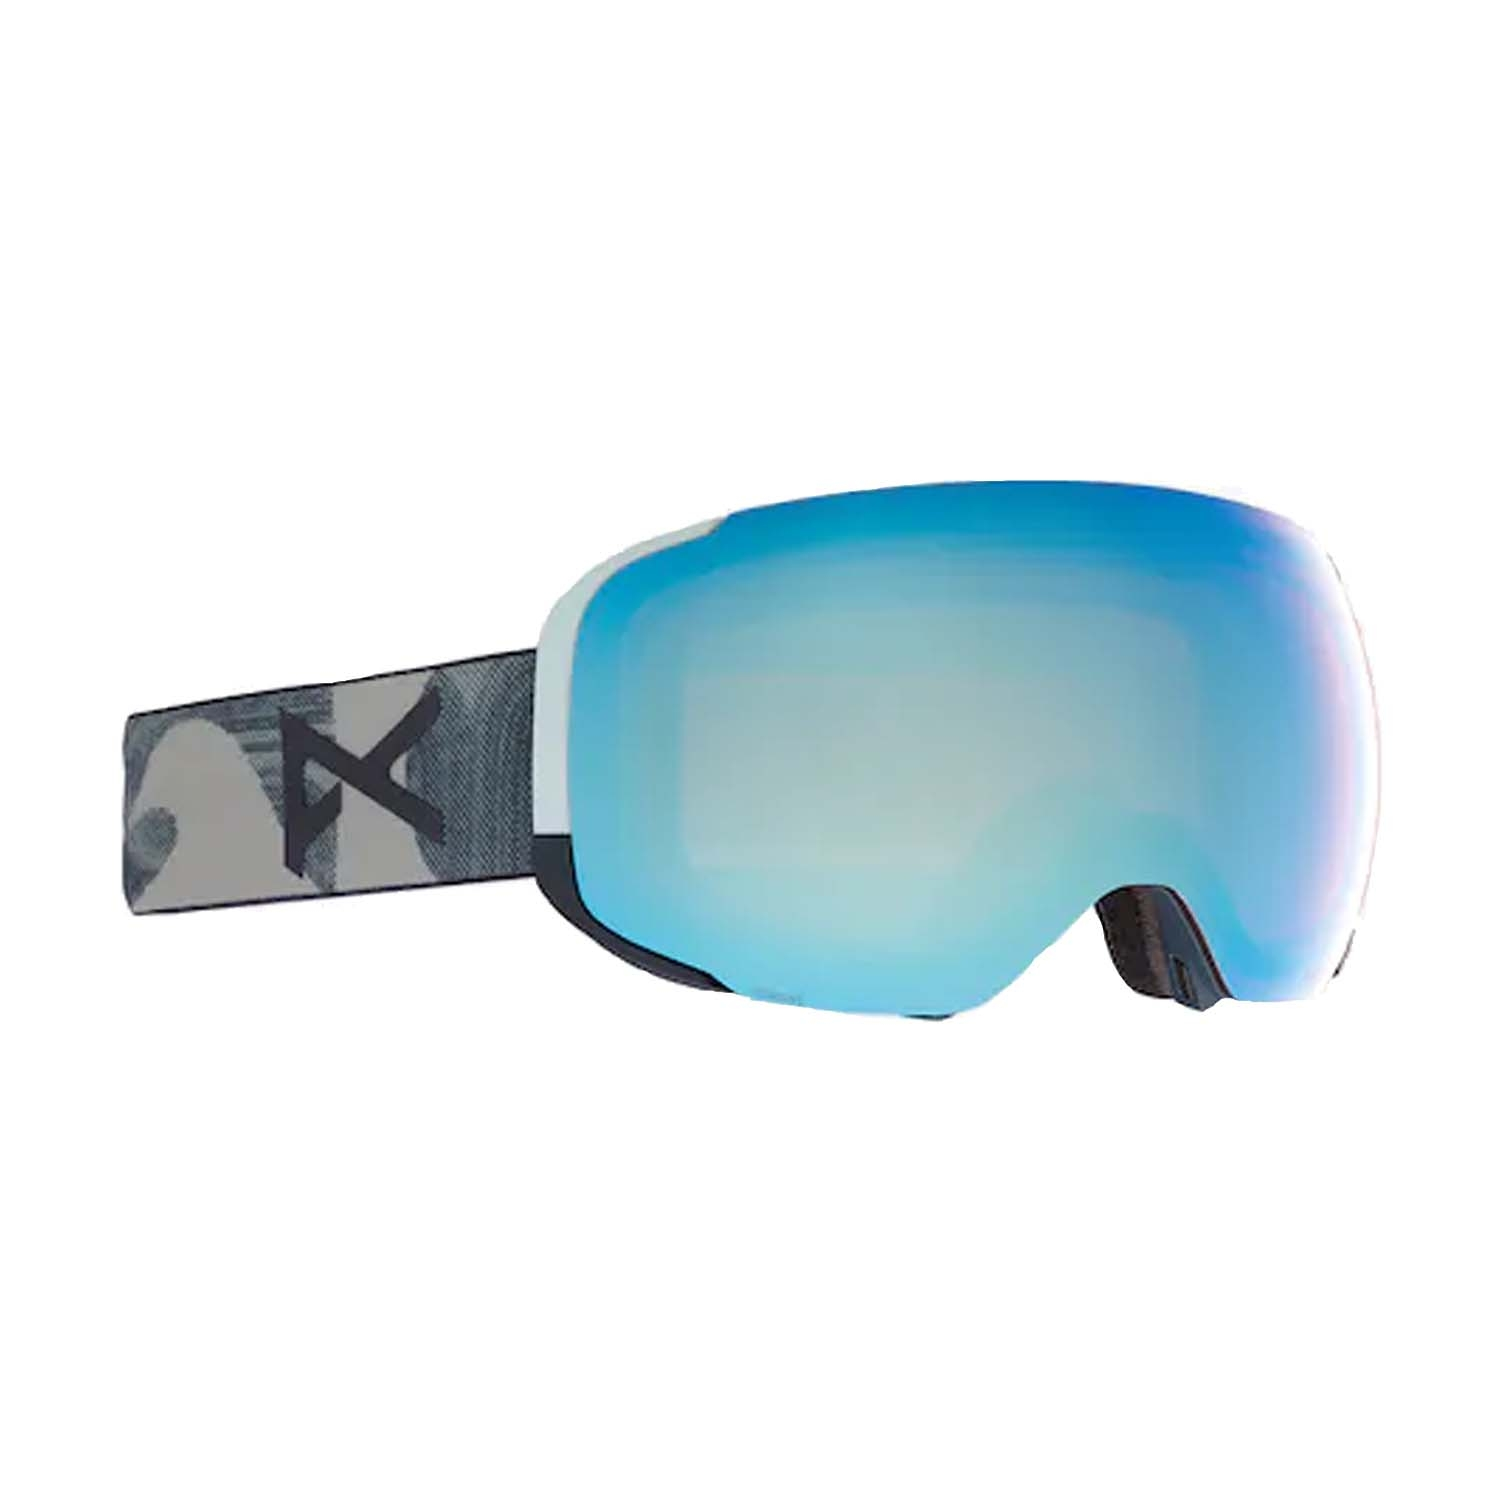 Anon M2 Goggles Ty Williams/Perceive Variable Blue Lens 2021